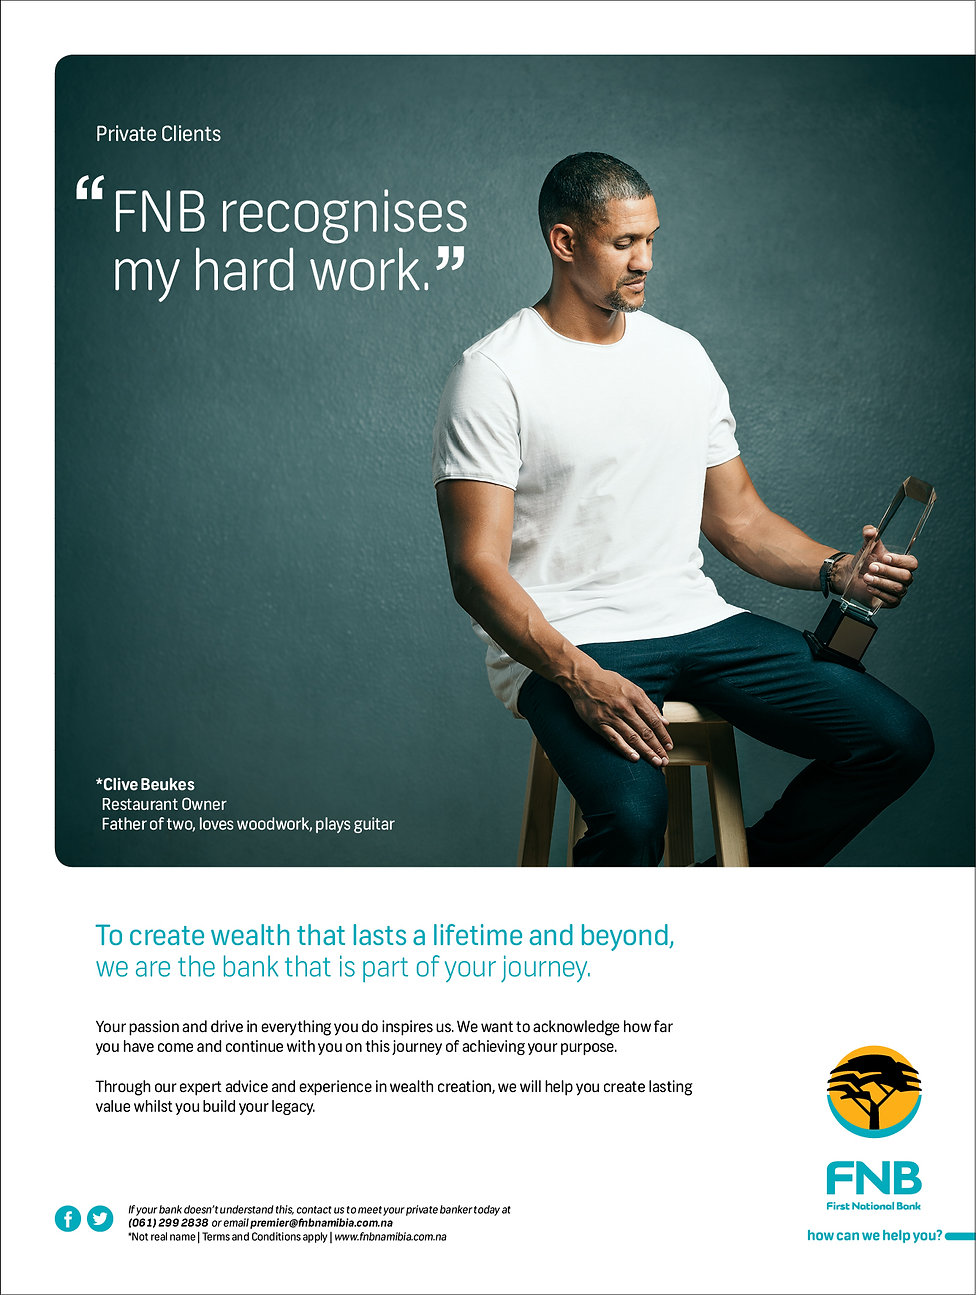 FNB private clients.jpg